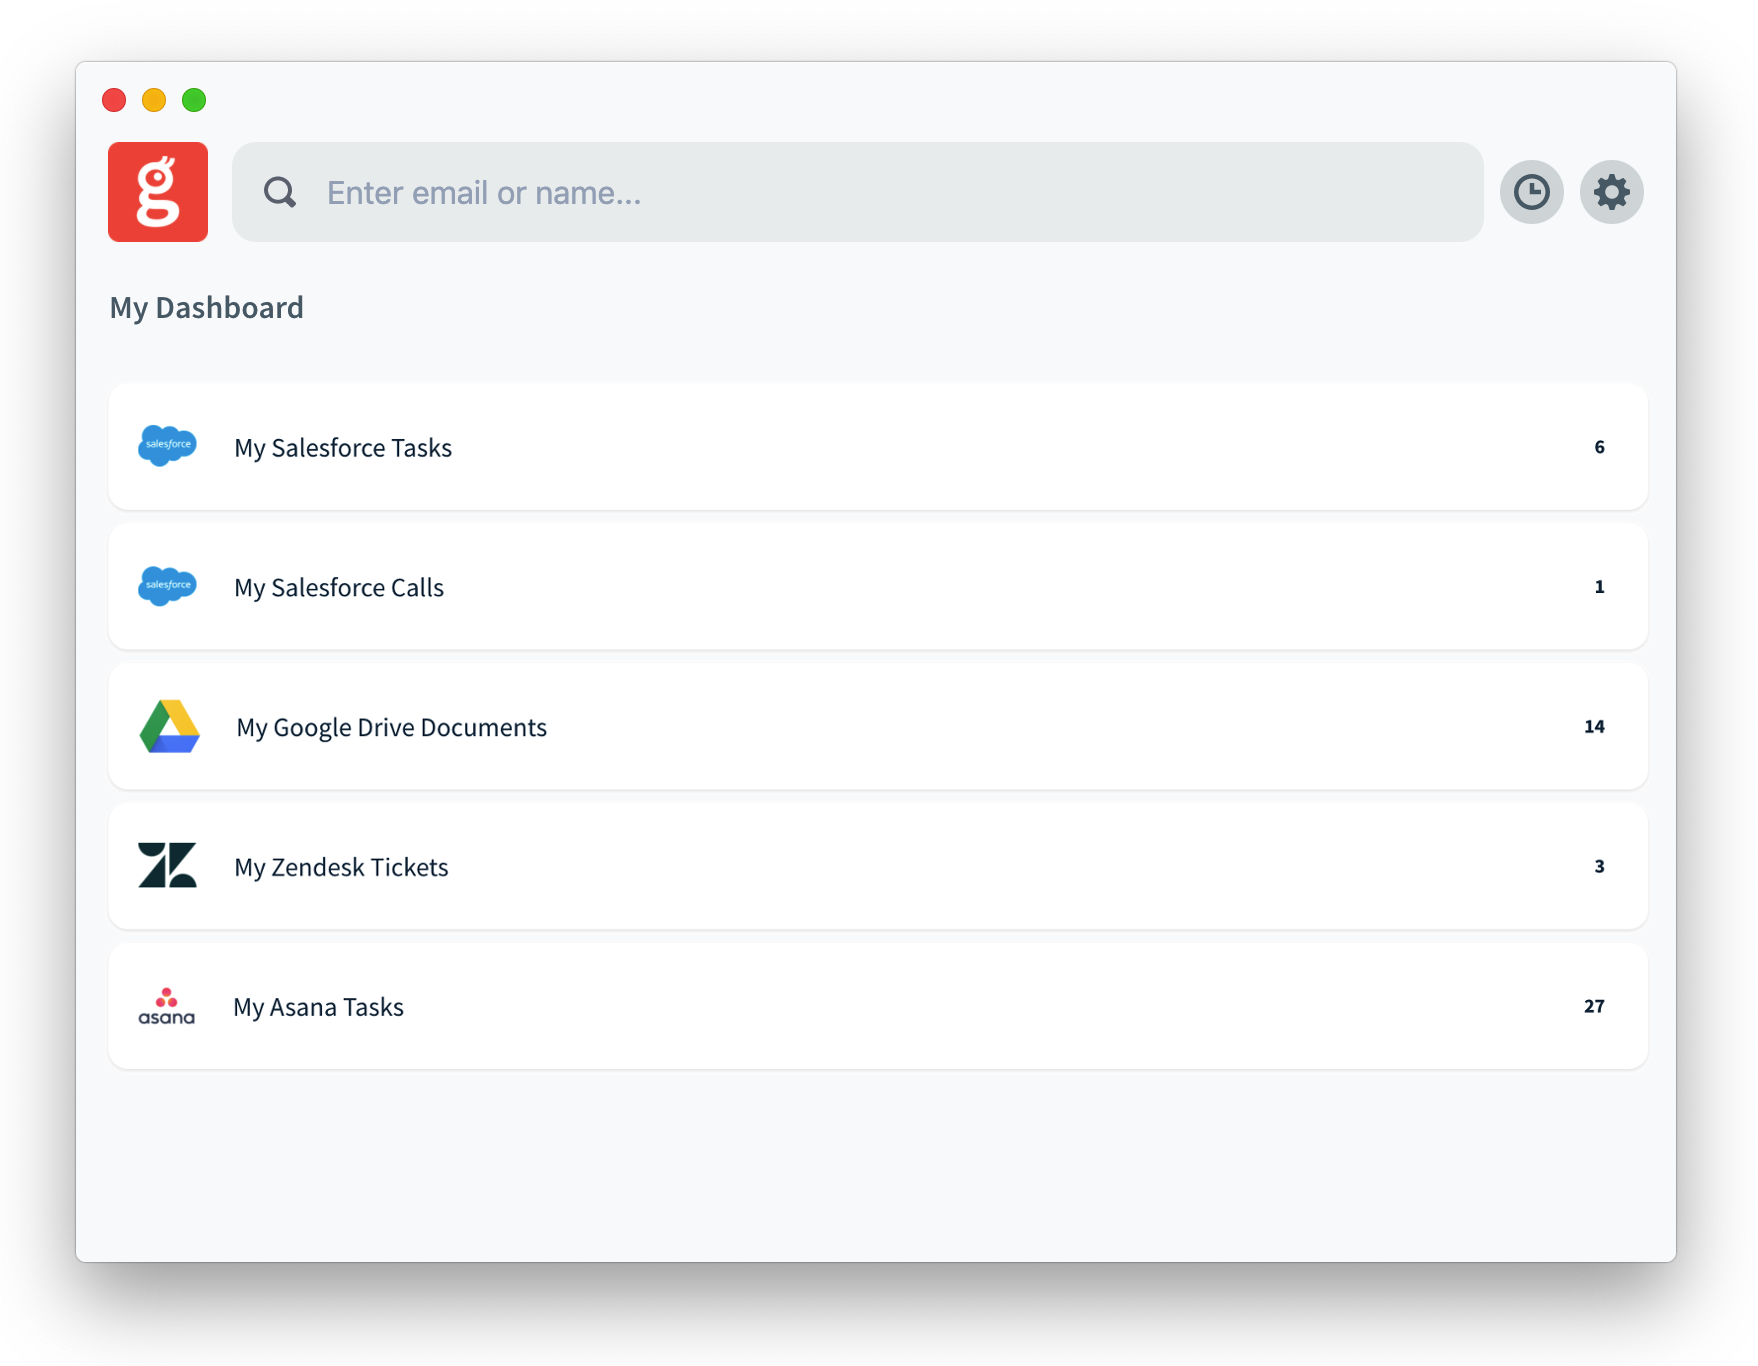 glances-dashboard-sneak-preview.png